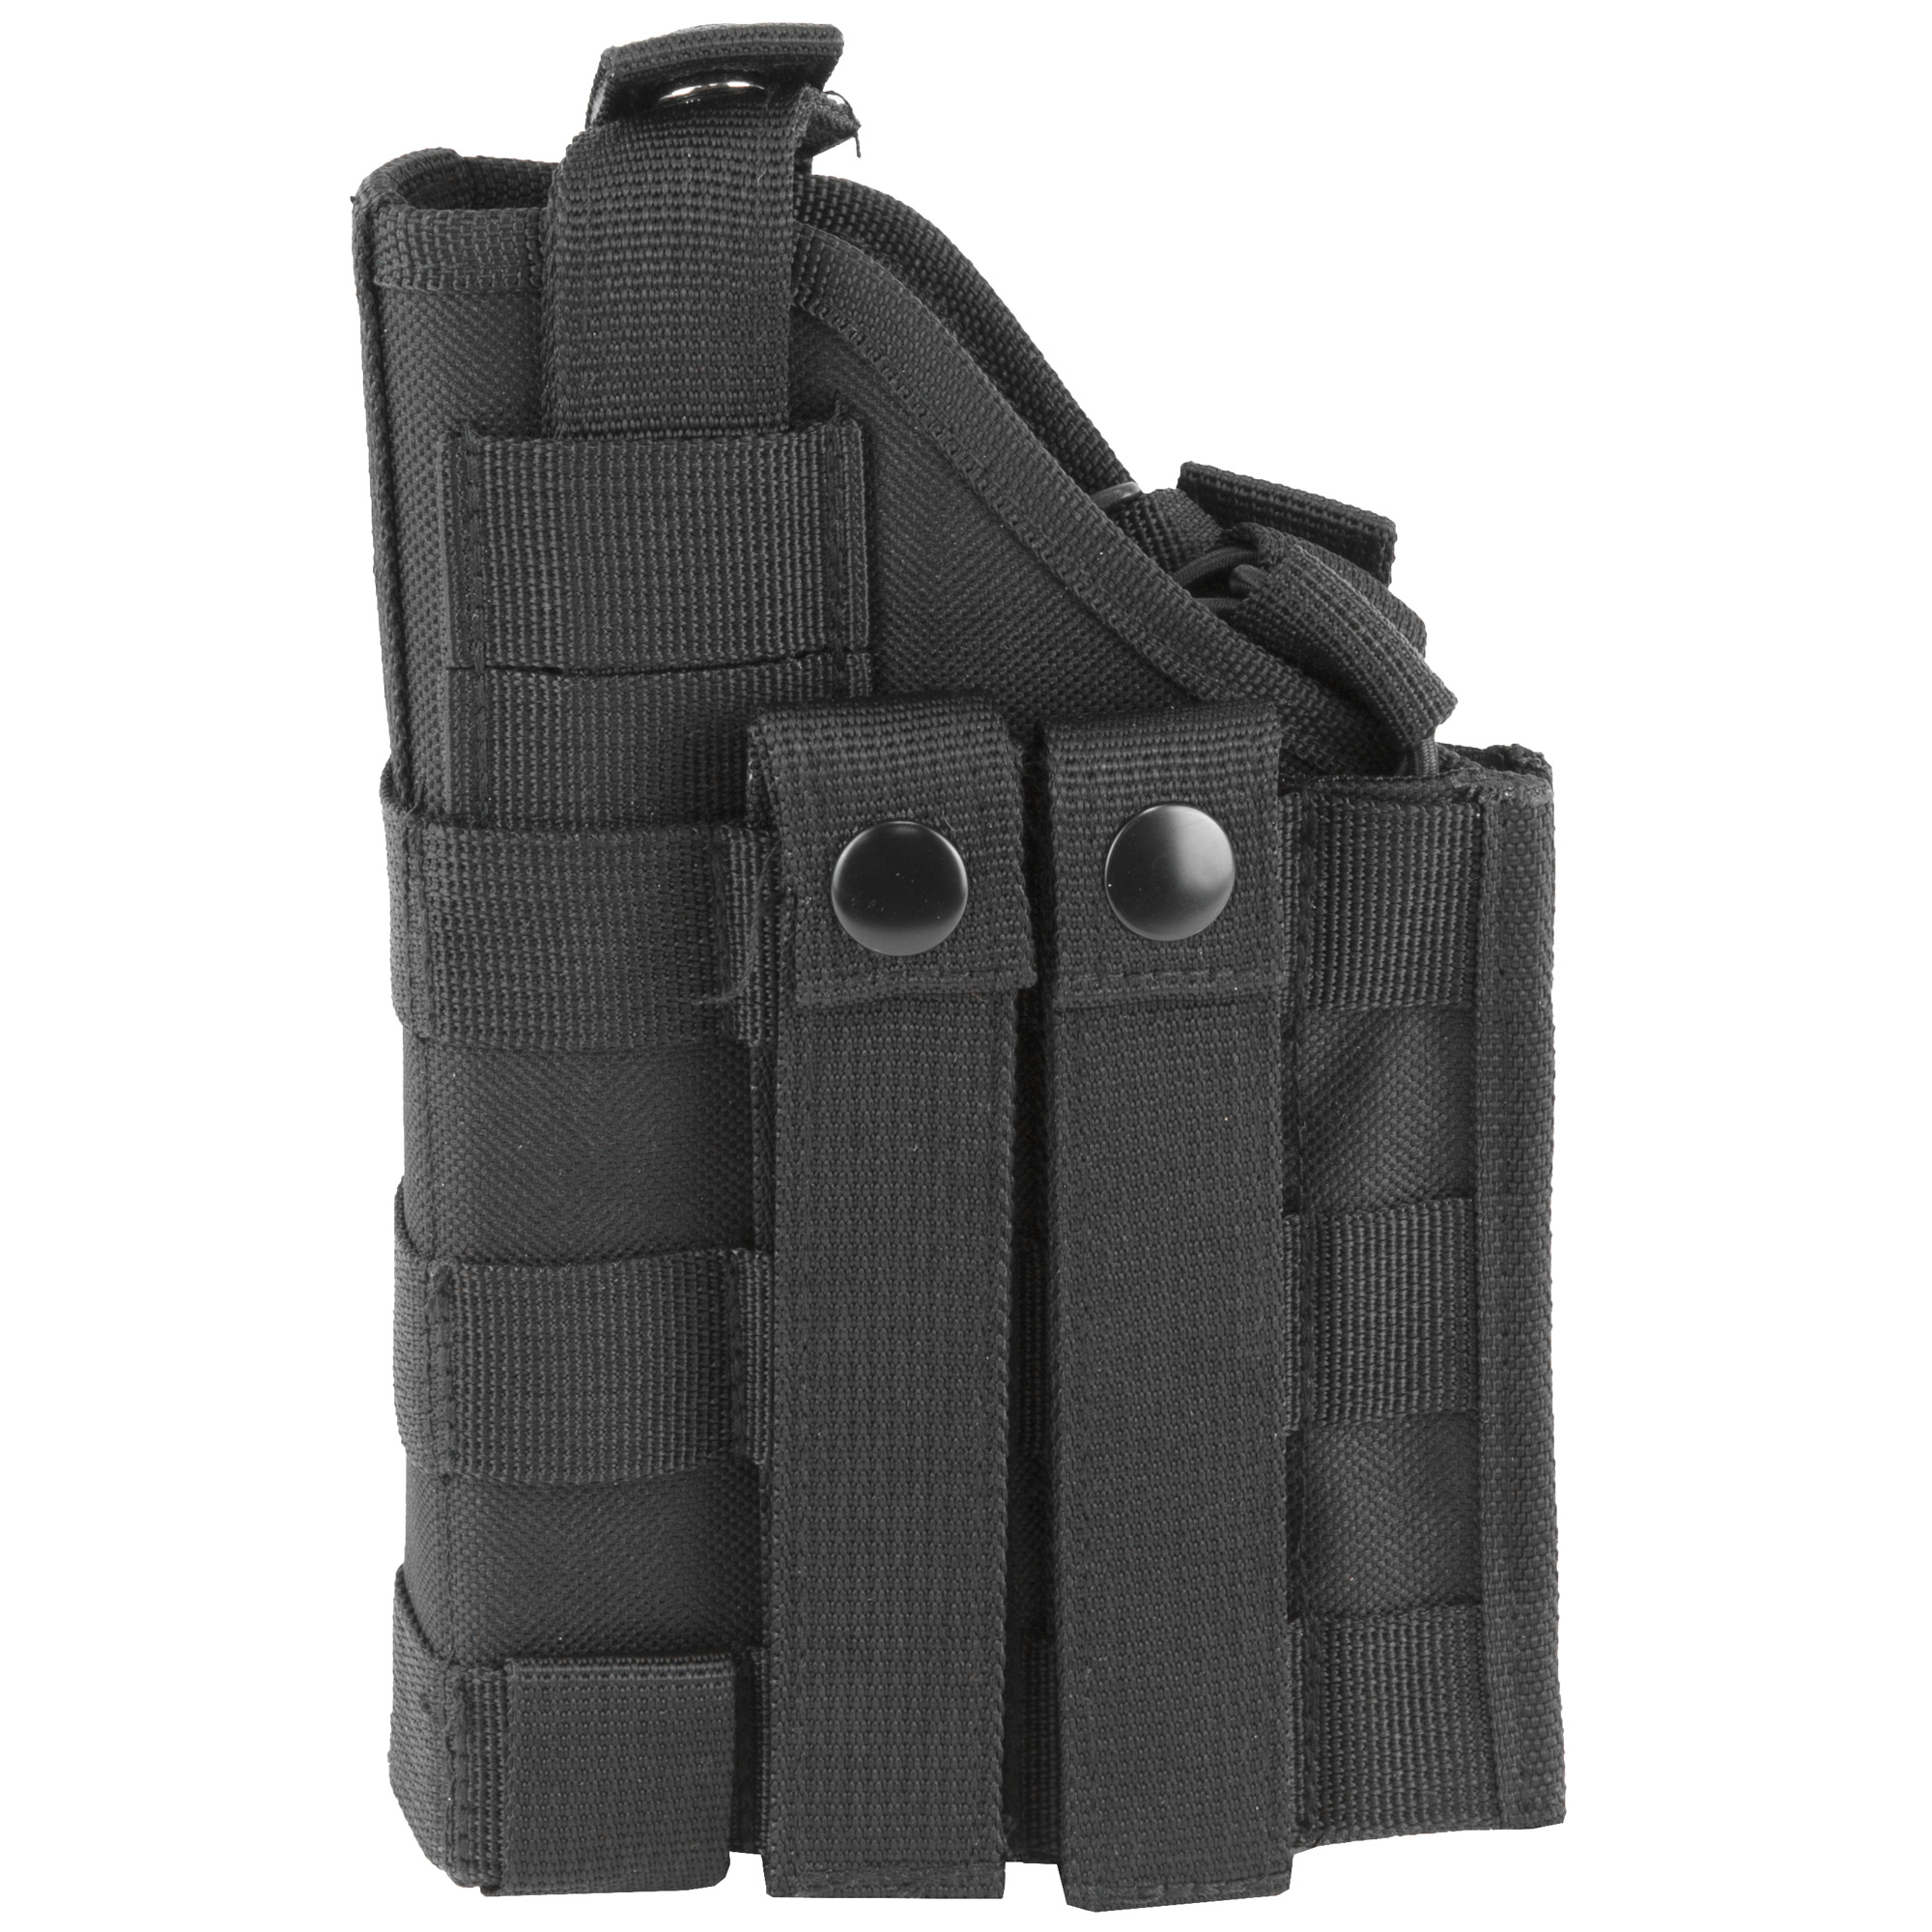 """This is a Innovative Ambidextrous Modular MOLLE Holster that is fully configurable for Full Size and Compact semi autos without or with tactical flashlights/lasers. With a Grid of Eyelets"""" this holster can be configured to fit various sizes and shapes of pistols. It can also be custom configured to fit around Tactical Flashlights/Lasers mounted onto the frame of the Pistol. Included are three different types of retention features that can be used to keep the pistol secured to the holster: adjustable Thumb-Snap"""" Grip Retention Bungee Cord with pull tab"""" and 1"""" Nylon Grip Retention strap with quick connect buckles."""